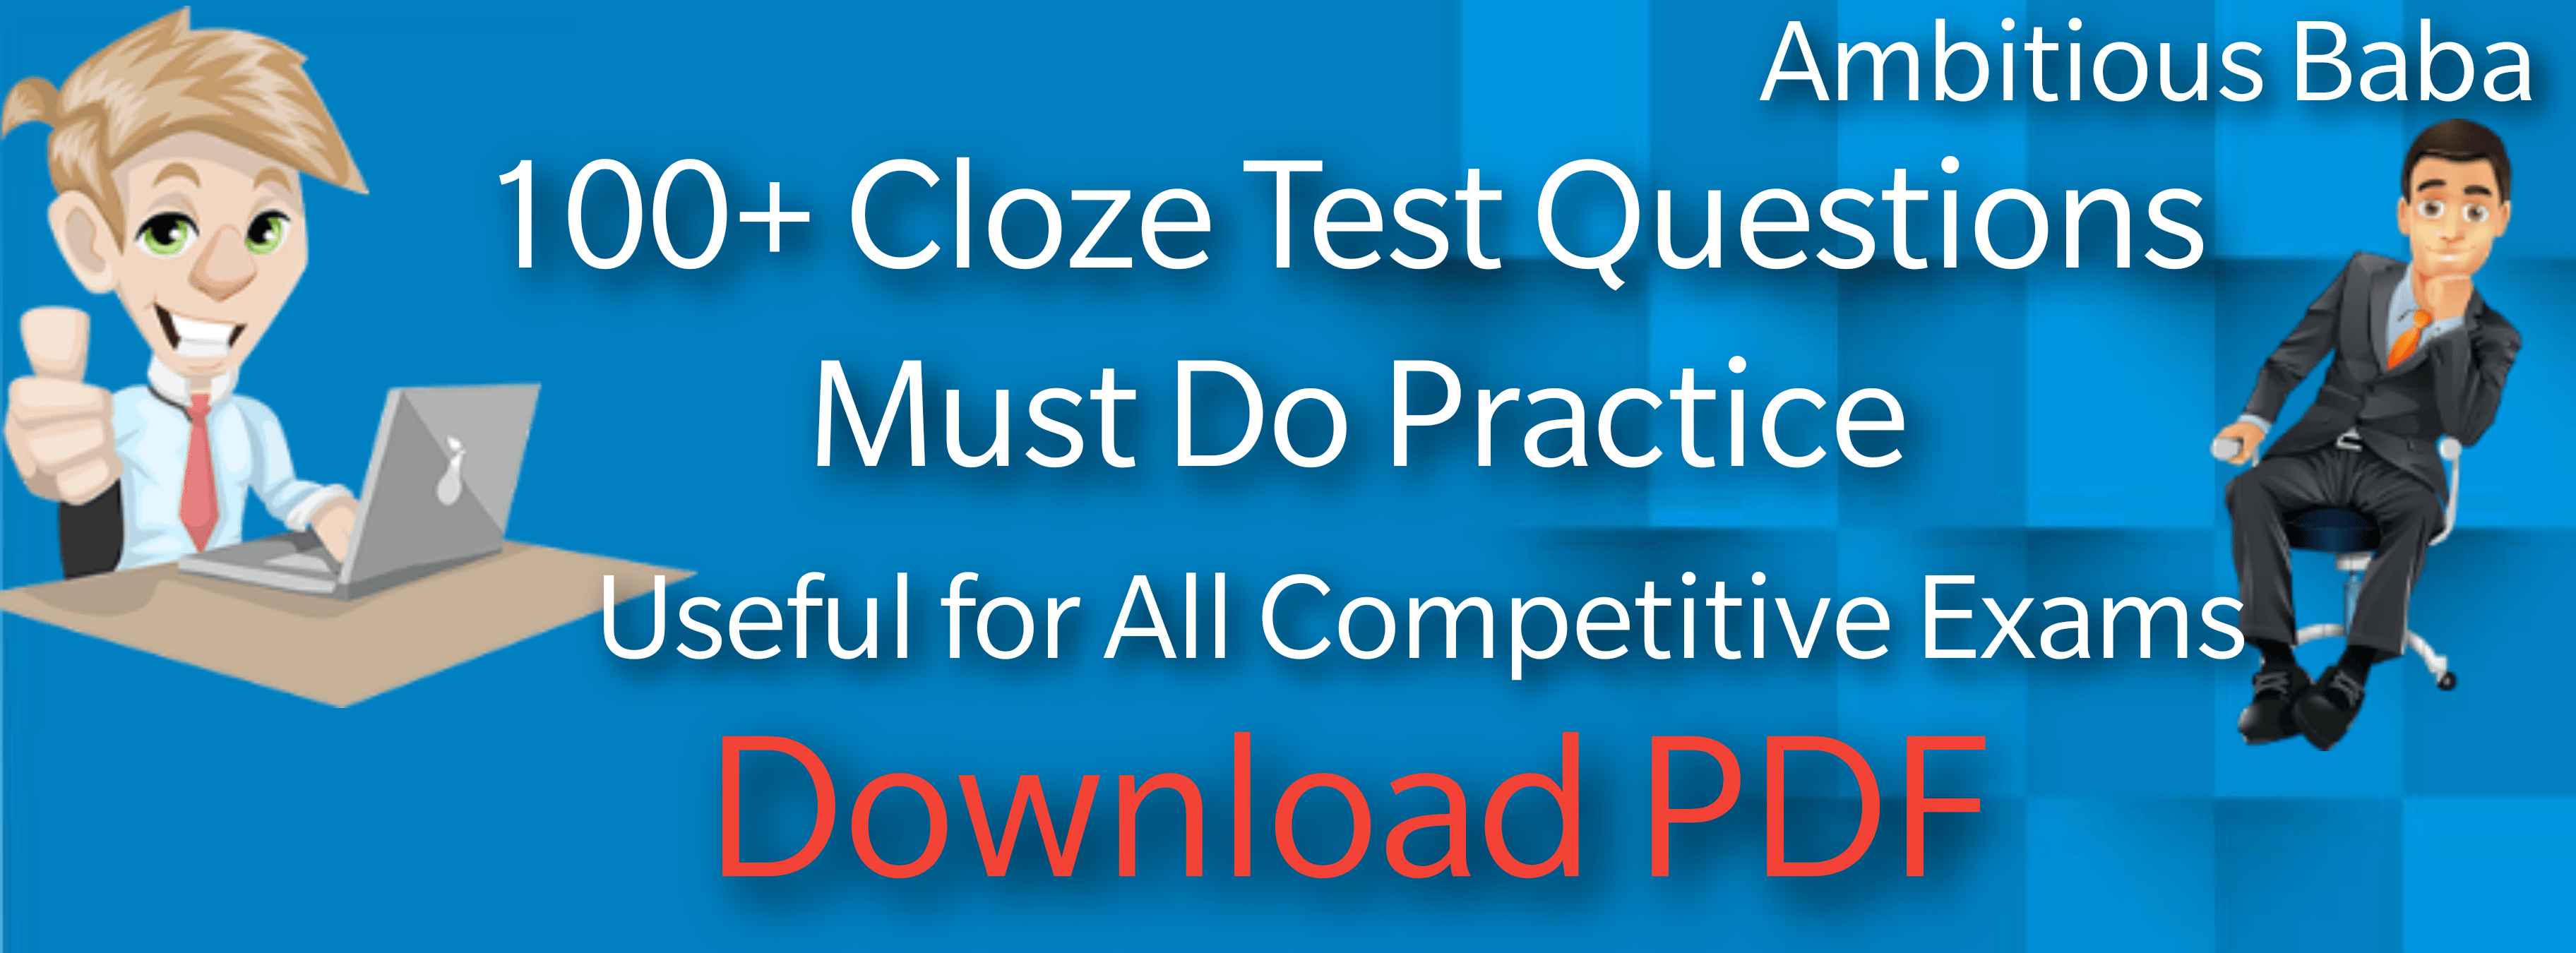 100+ Cloze Test Question for all competitive exams: Download PDF